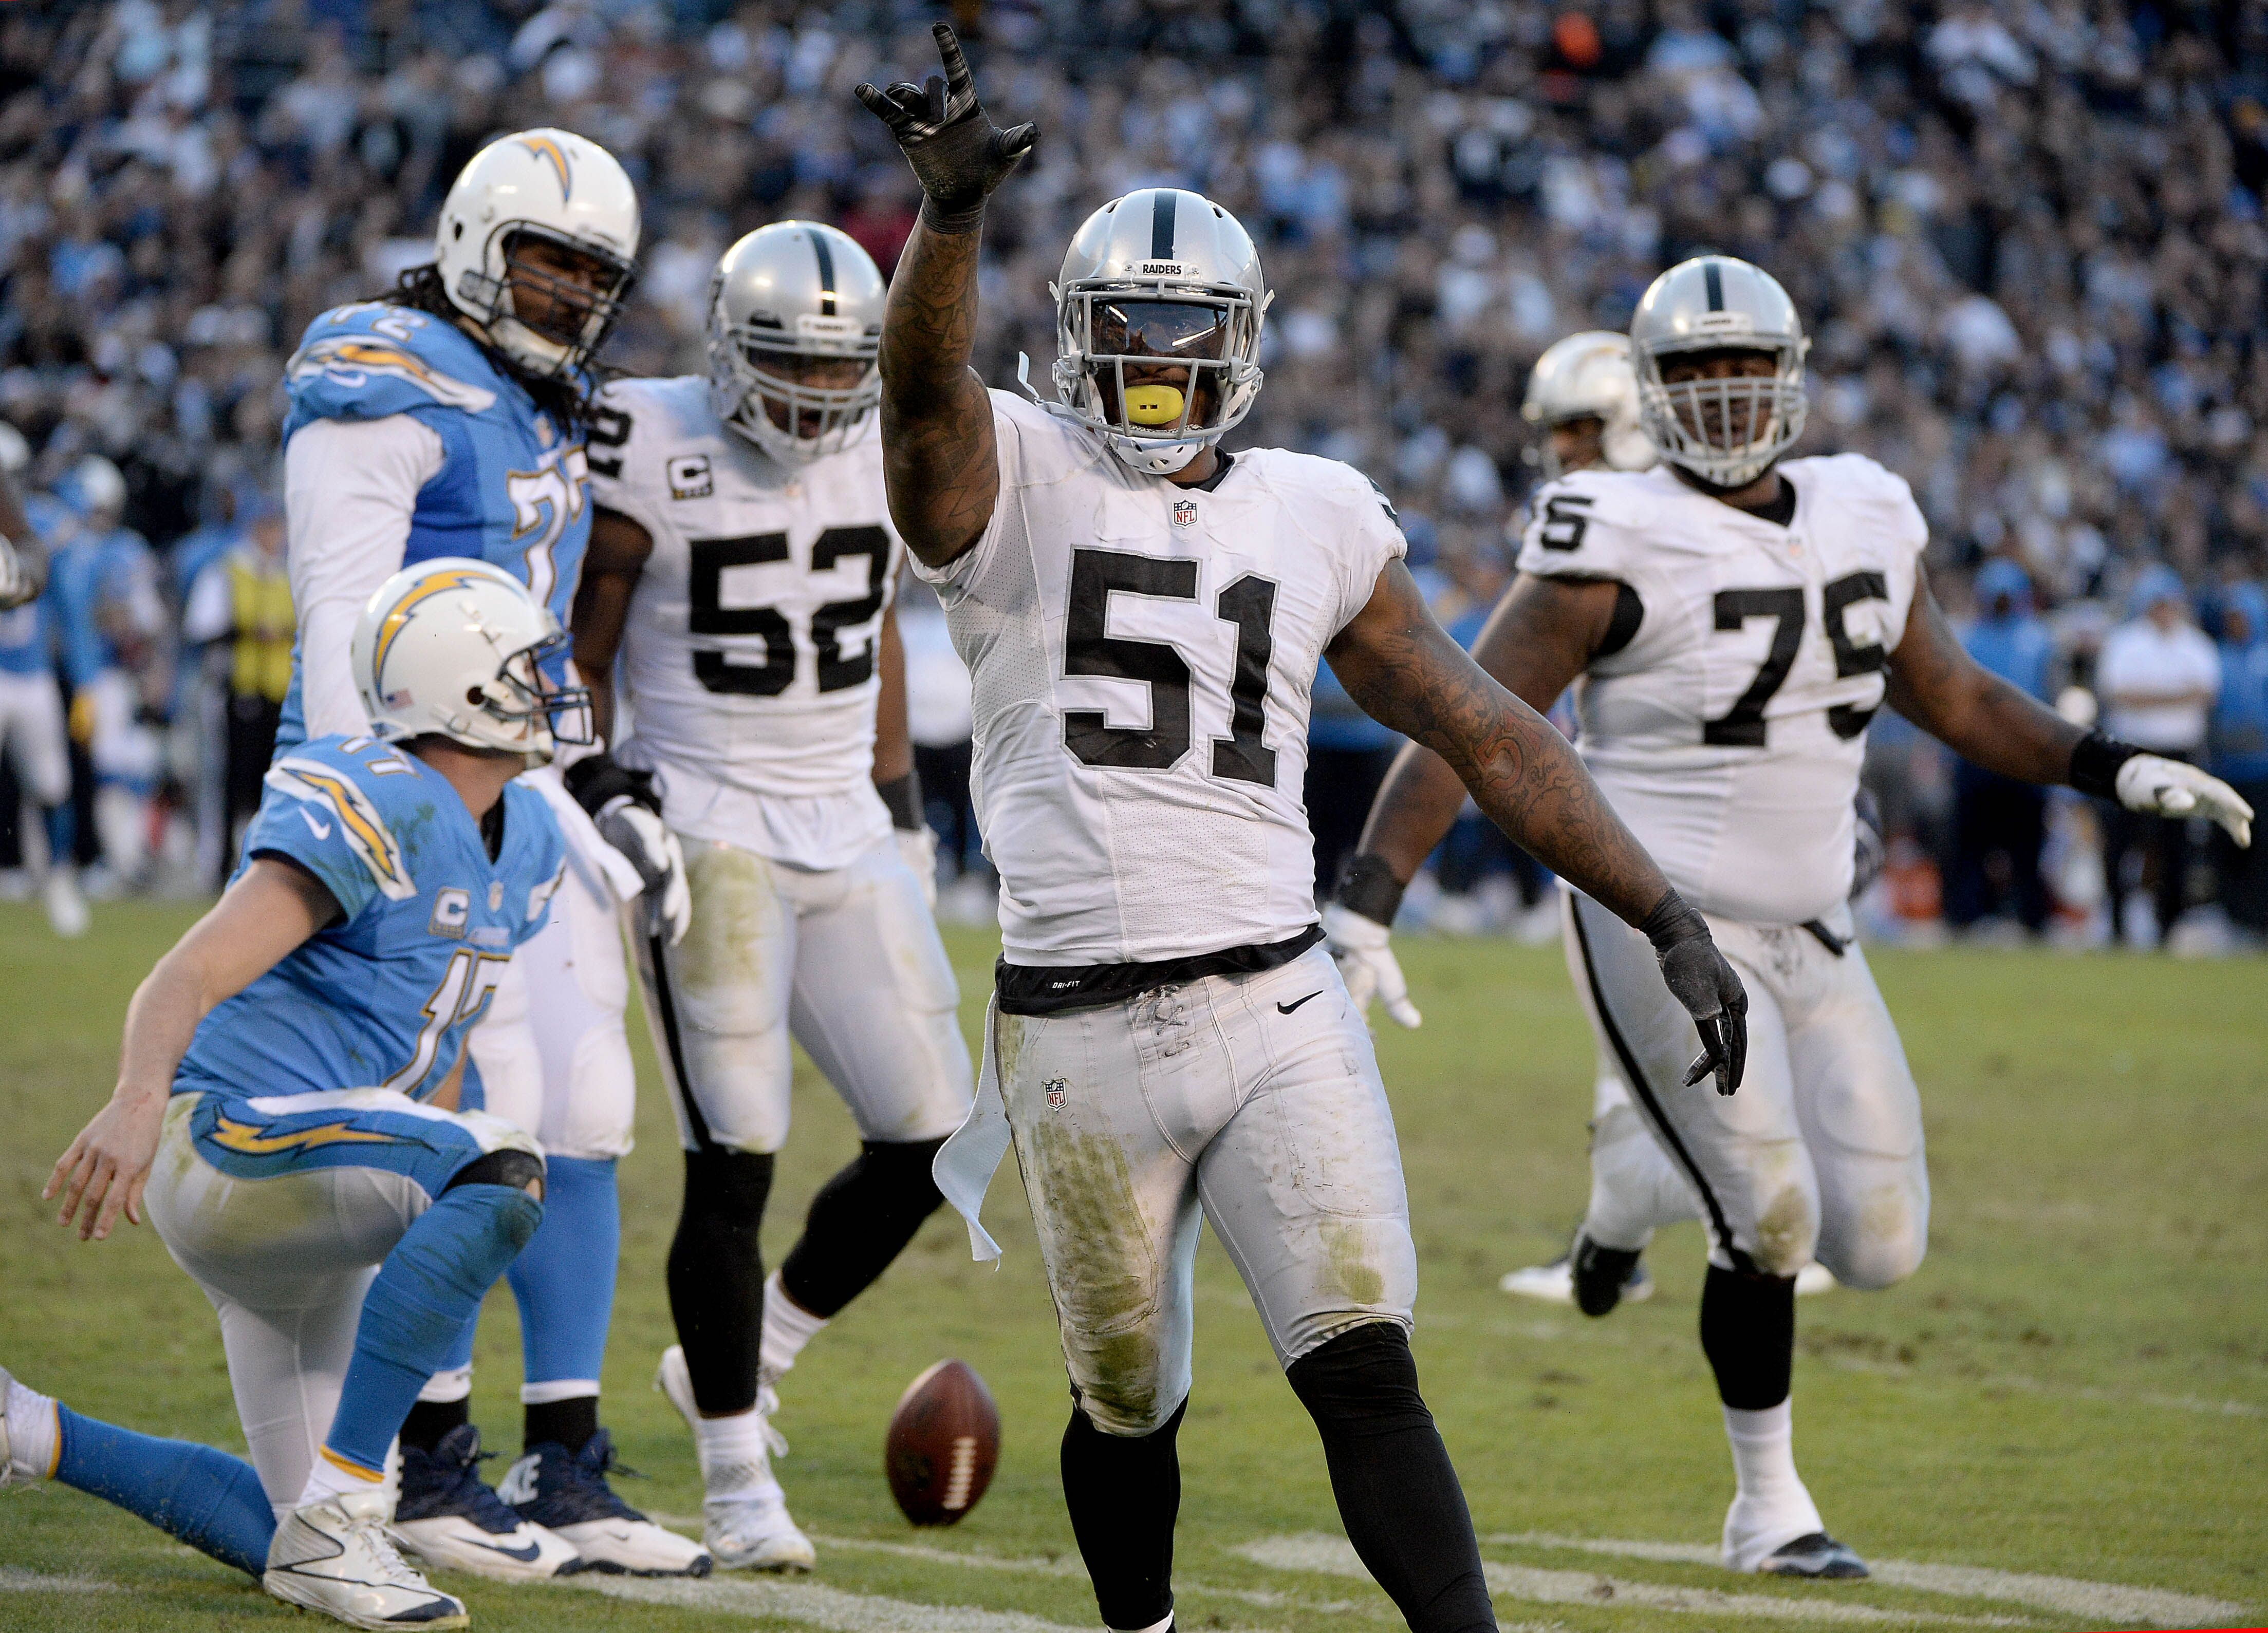 630221950-oakland-raiders-v-san-diego-chargers.jpg